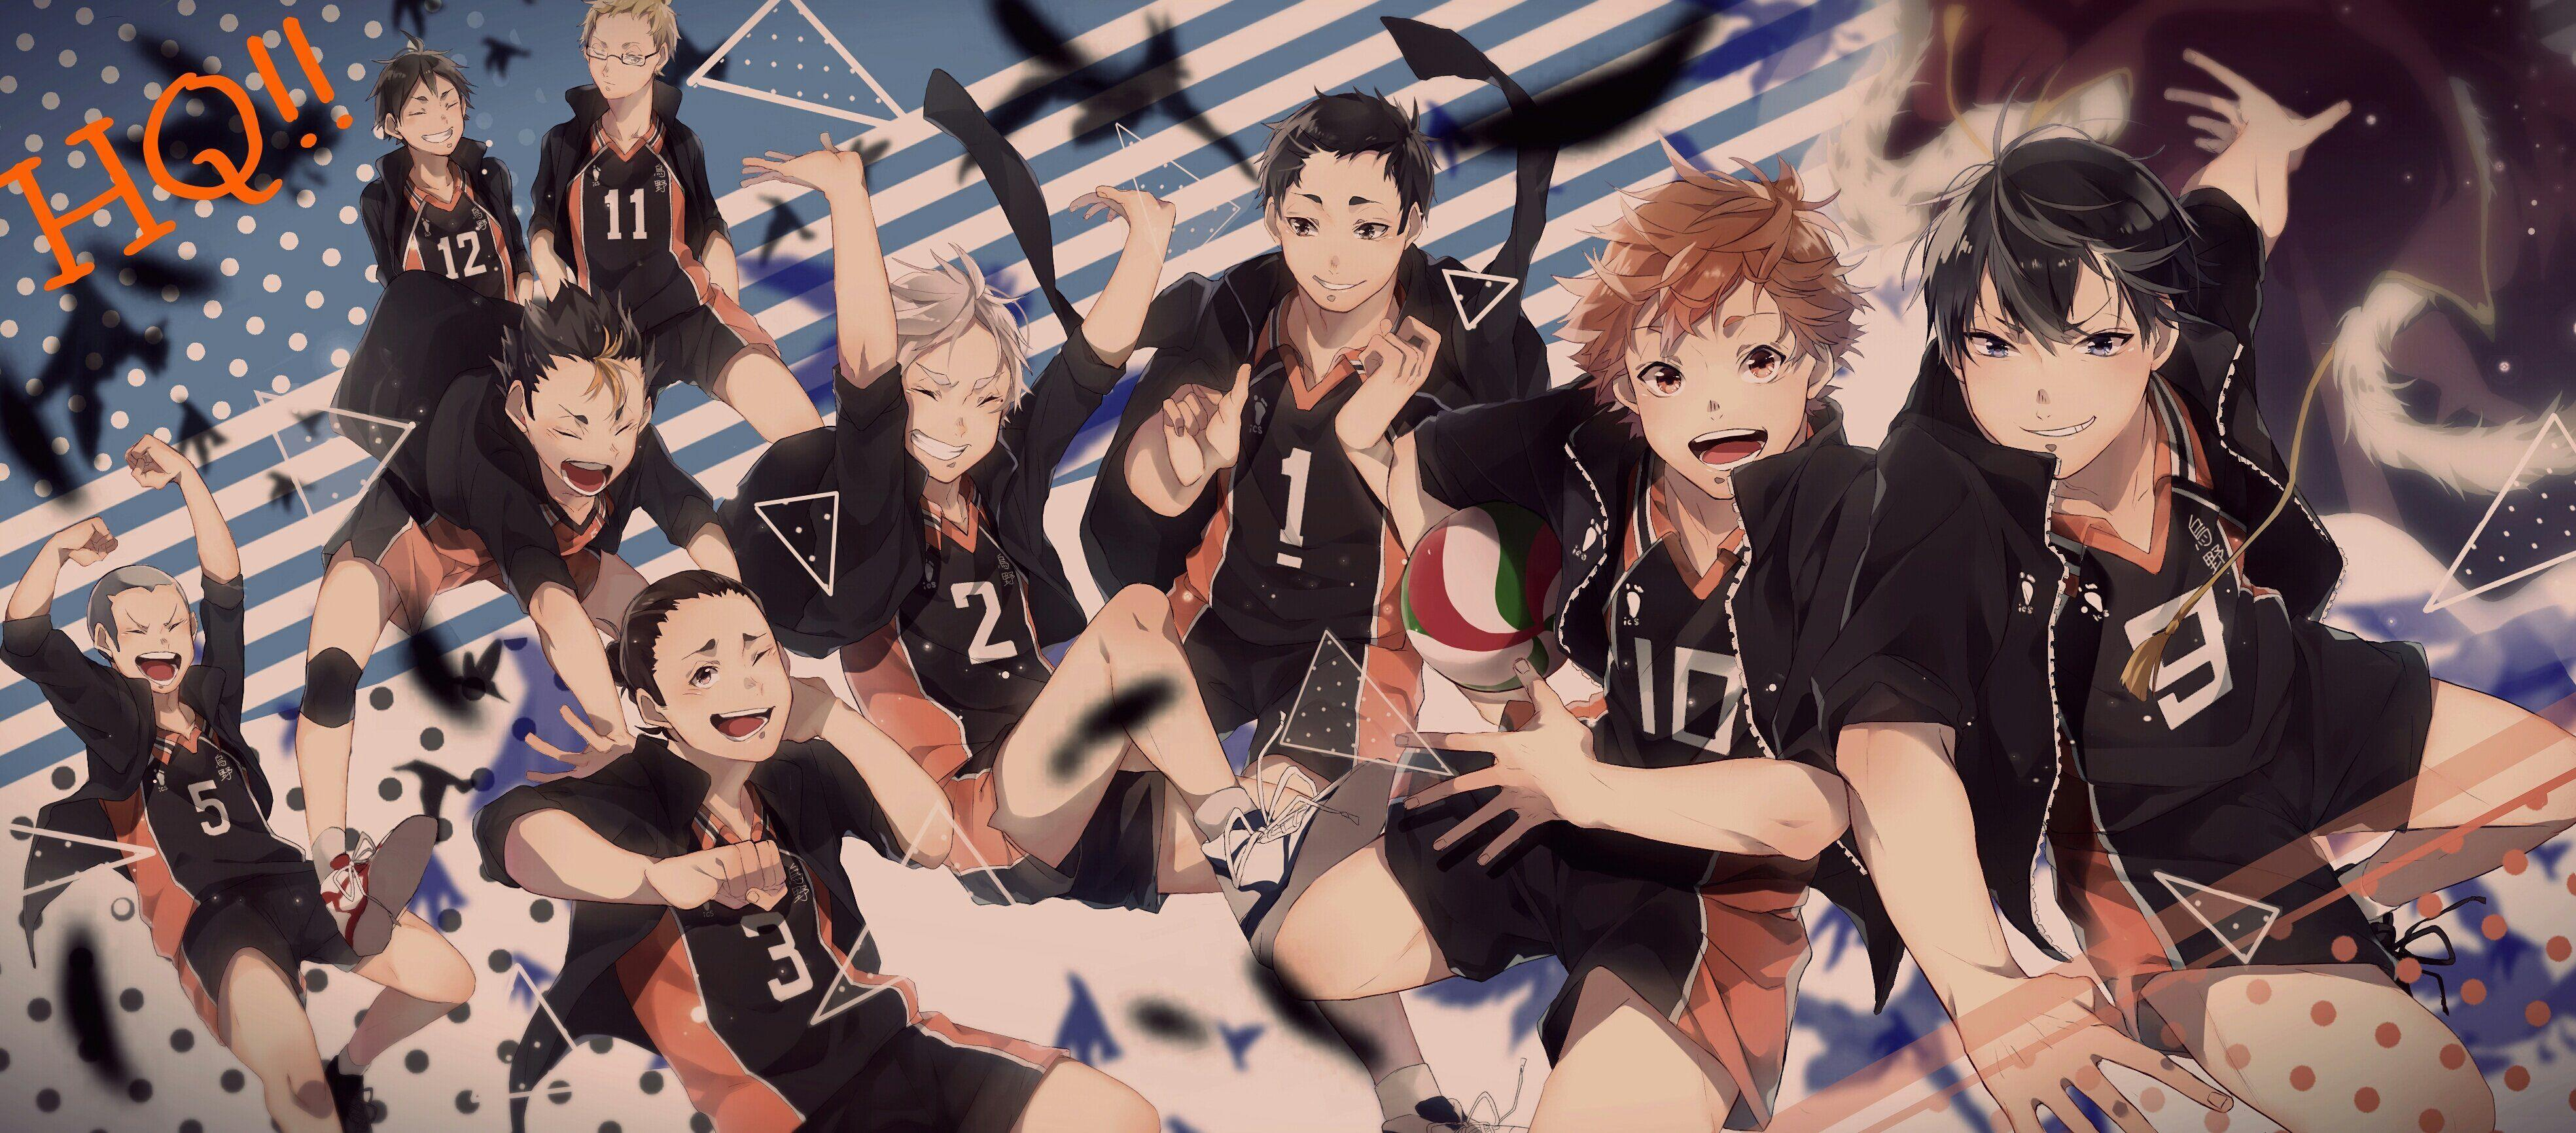 Haikyuu Hd Wallpaper For Laptop Gambarku